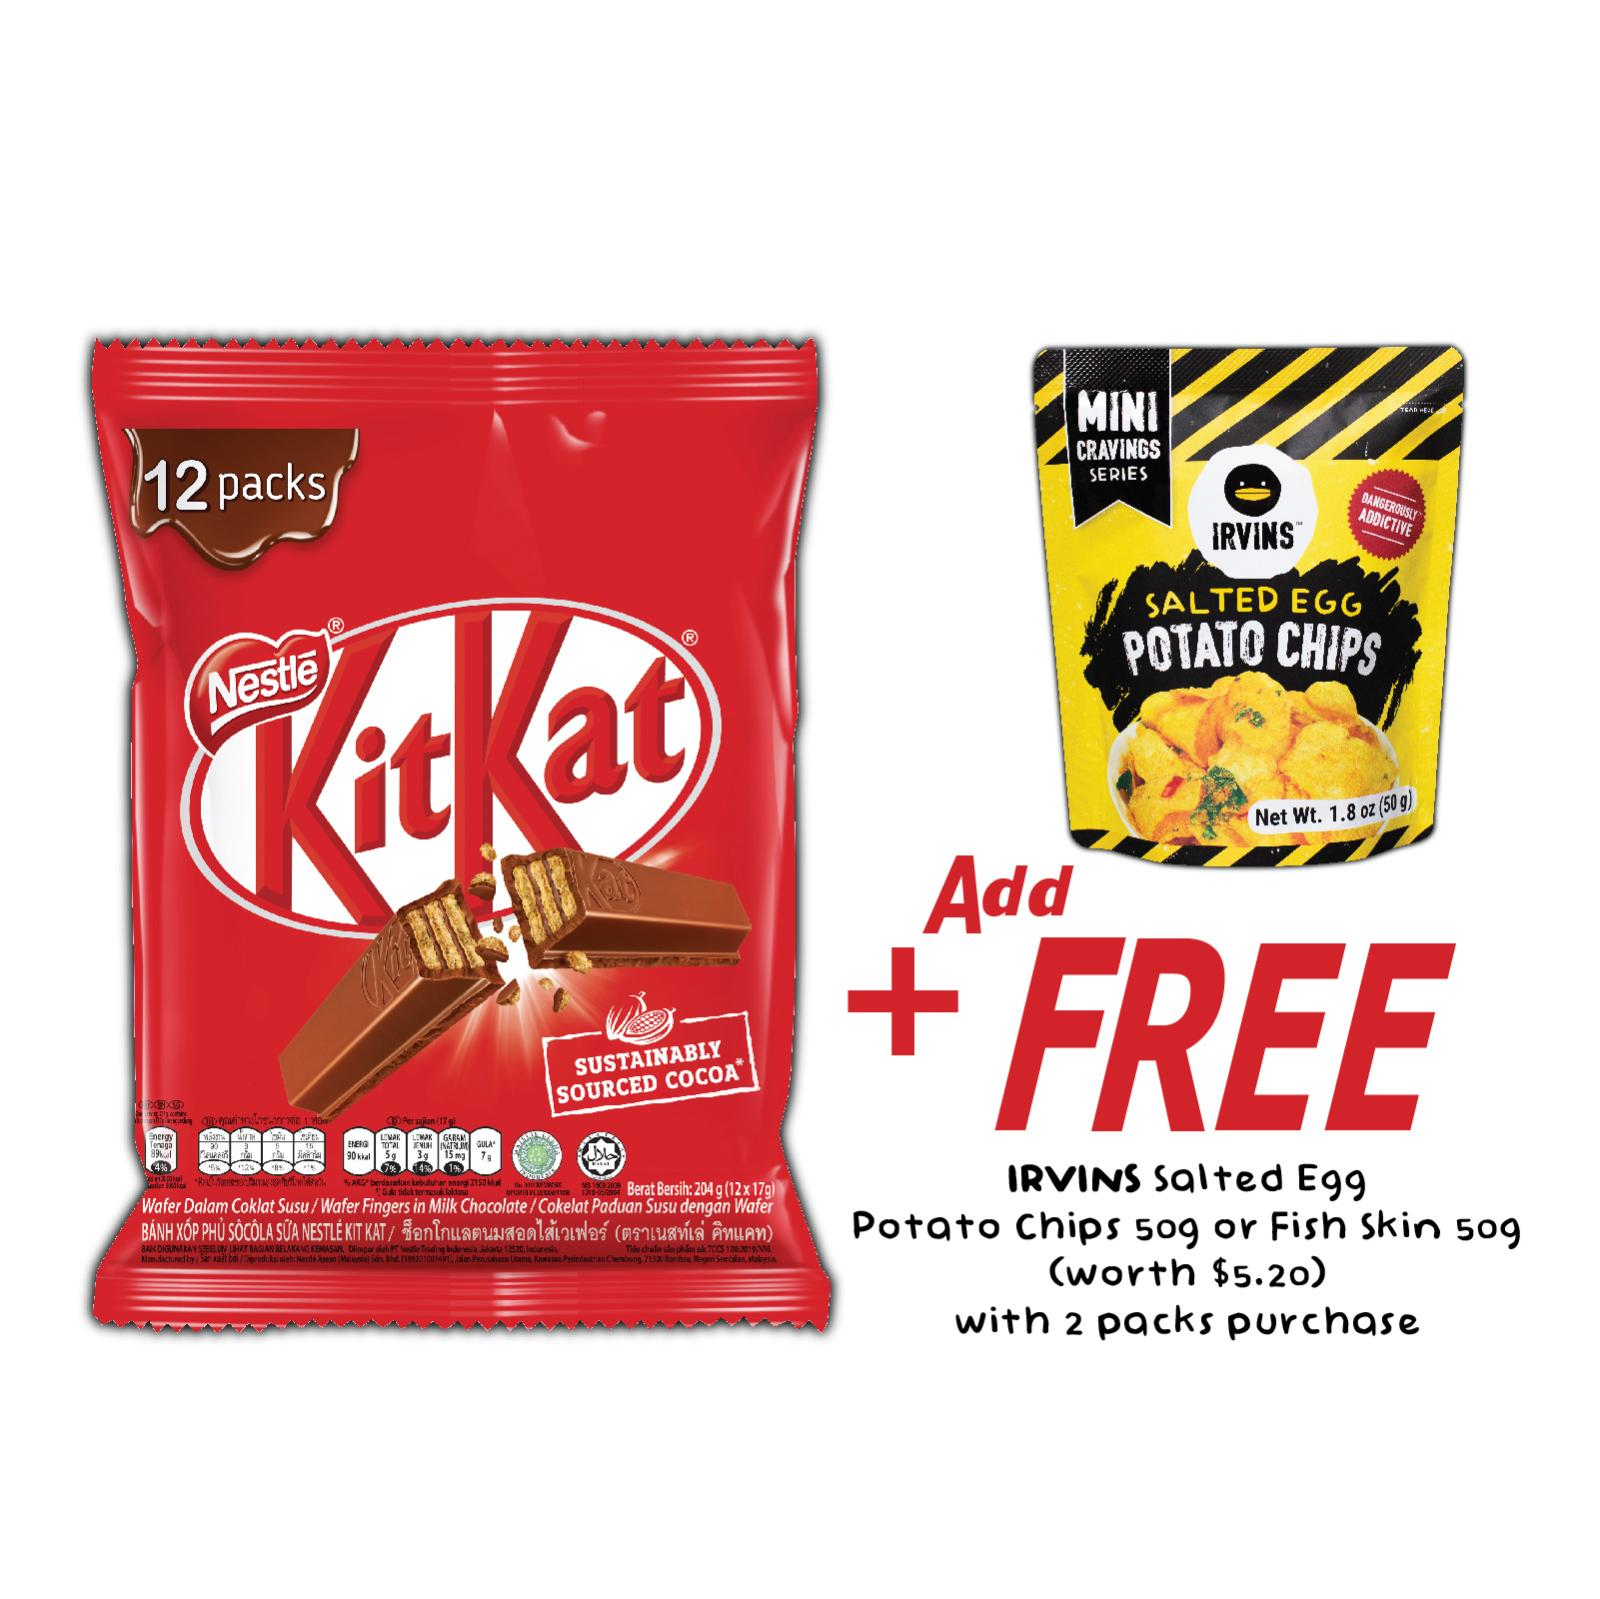 NESTLE KIT KAT Finger Milk Chocolate Bar Snack Pack